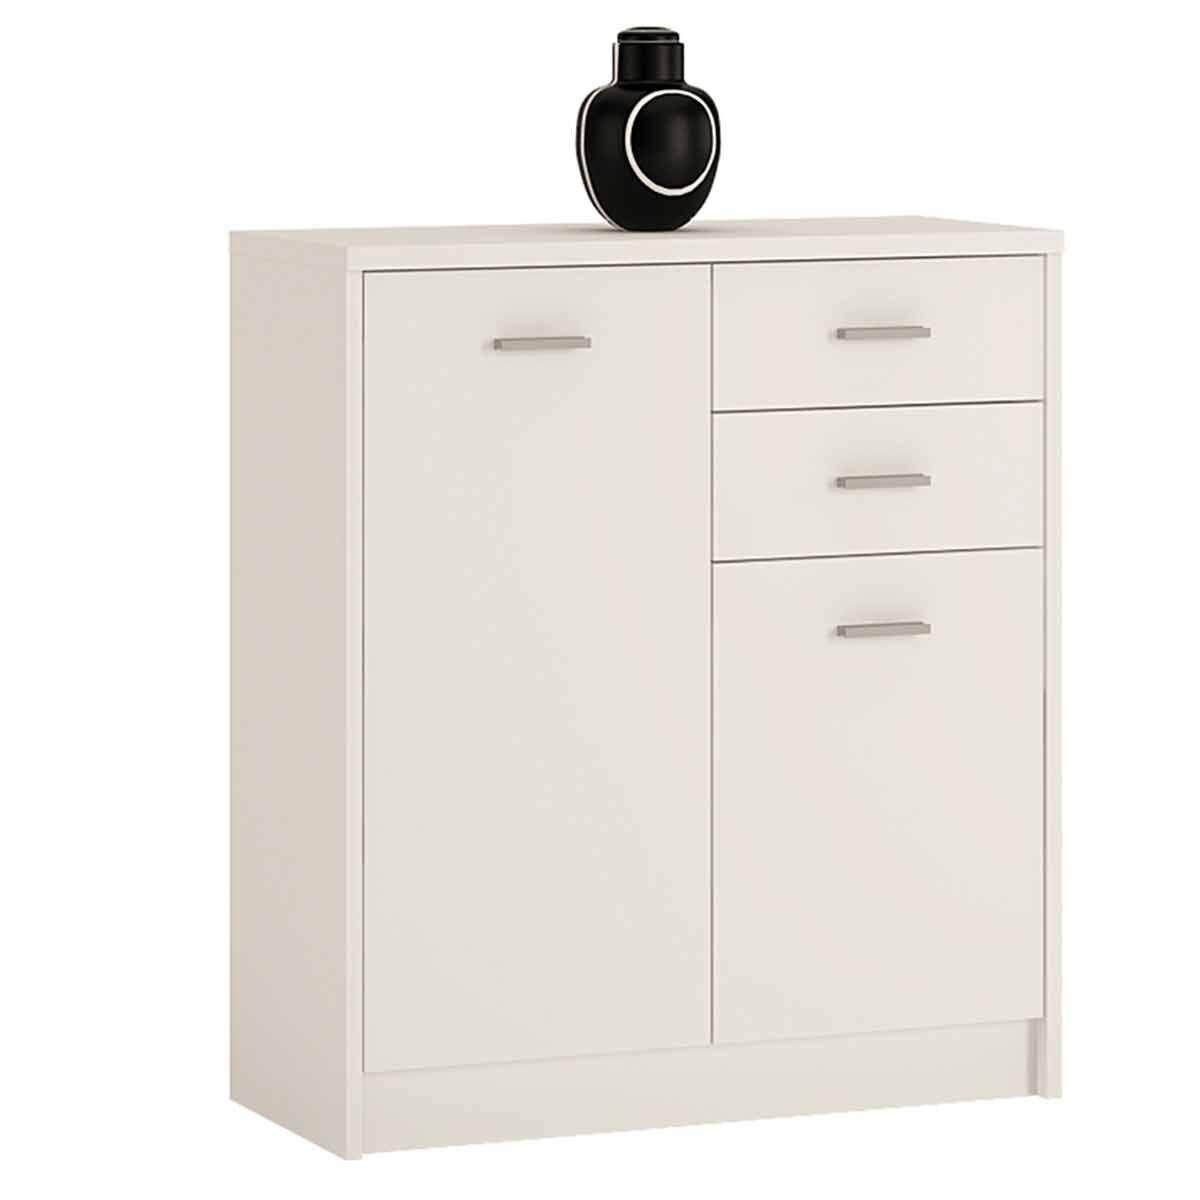 Belgravia 2 Door Cupboard with Drawers Pearl White